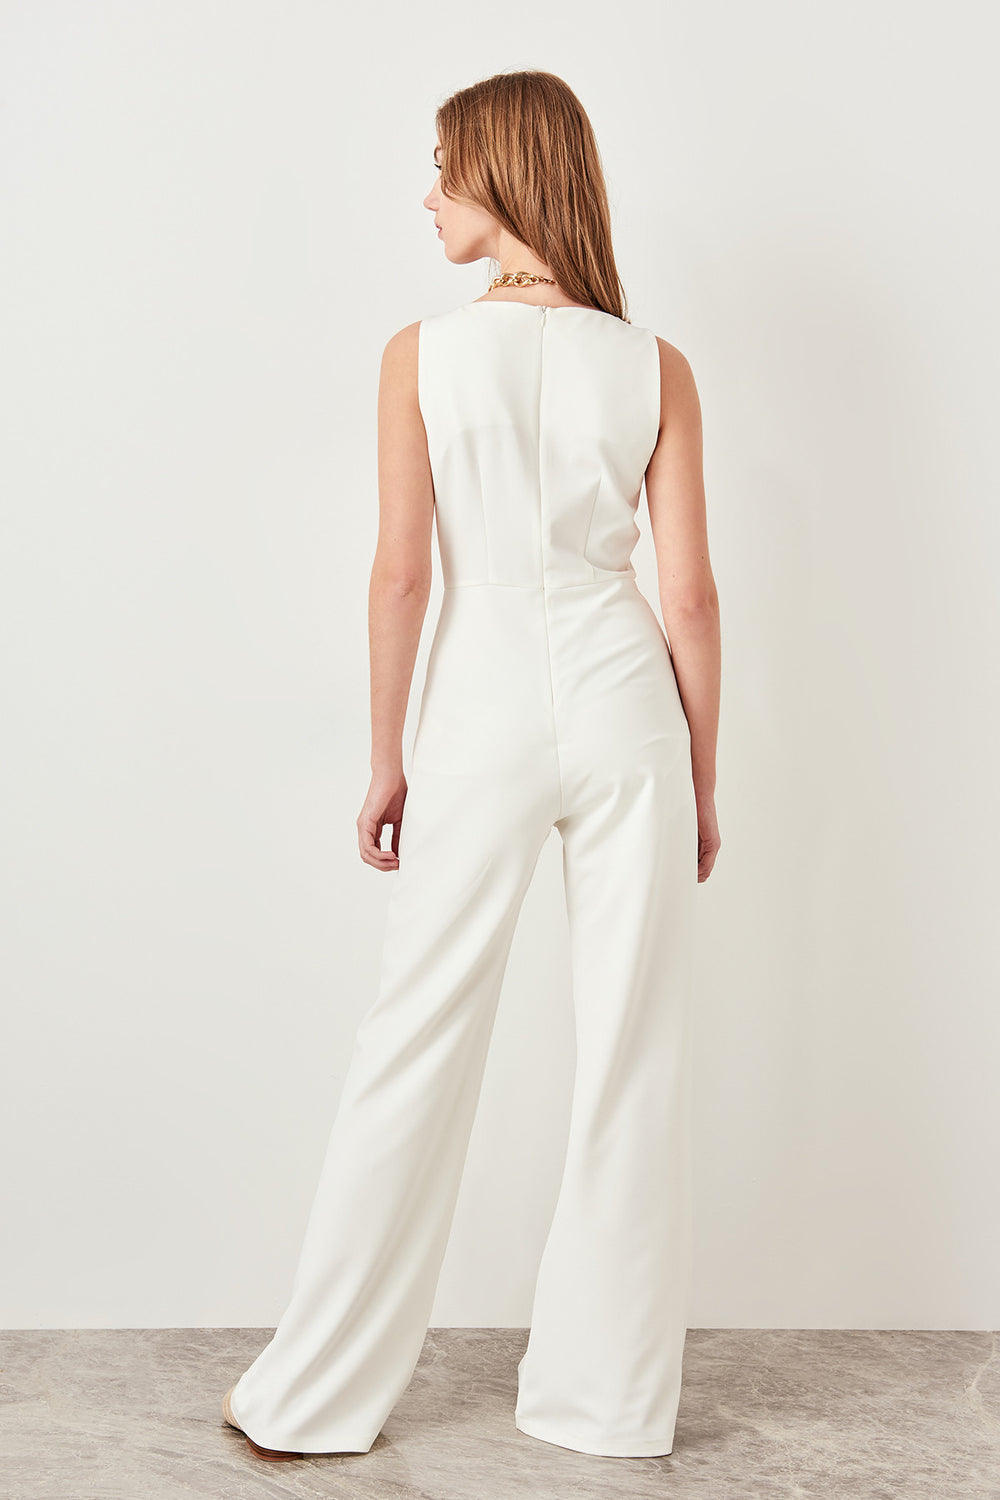 Miss Zut Miss Zut White Basic Loose Hip hop Office Lady Jumpsuits Miss Zut &CO